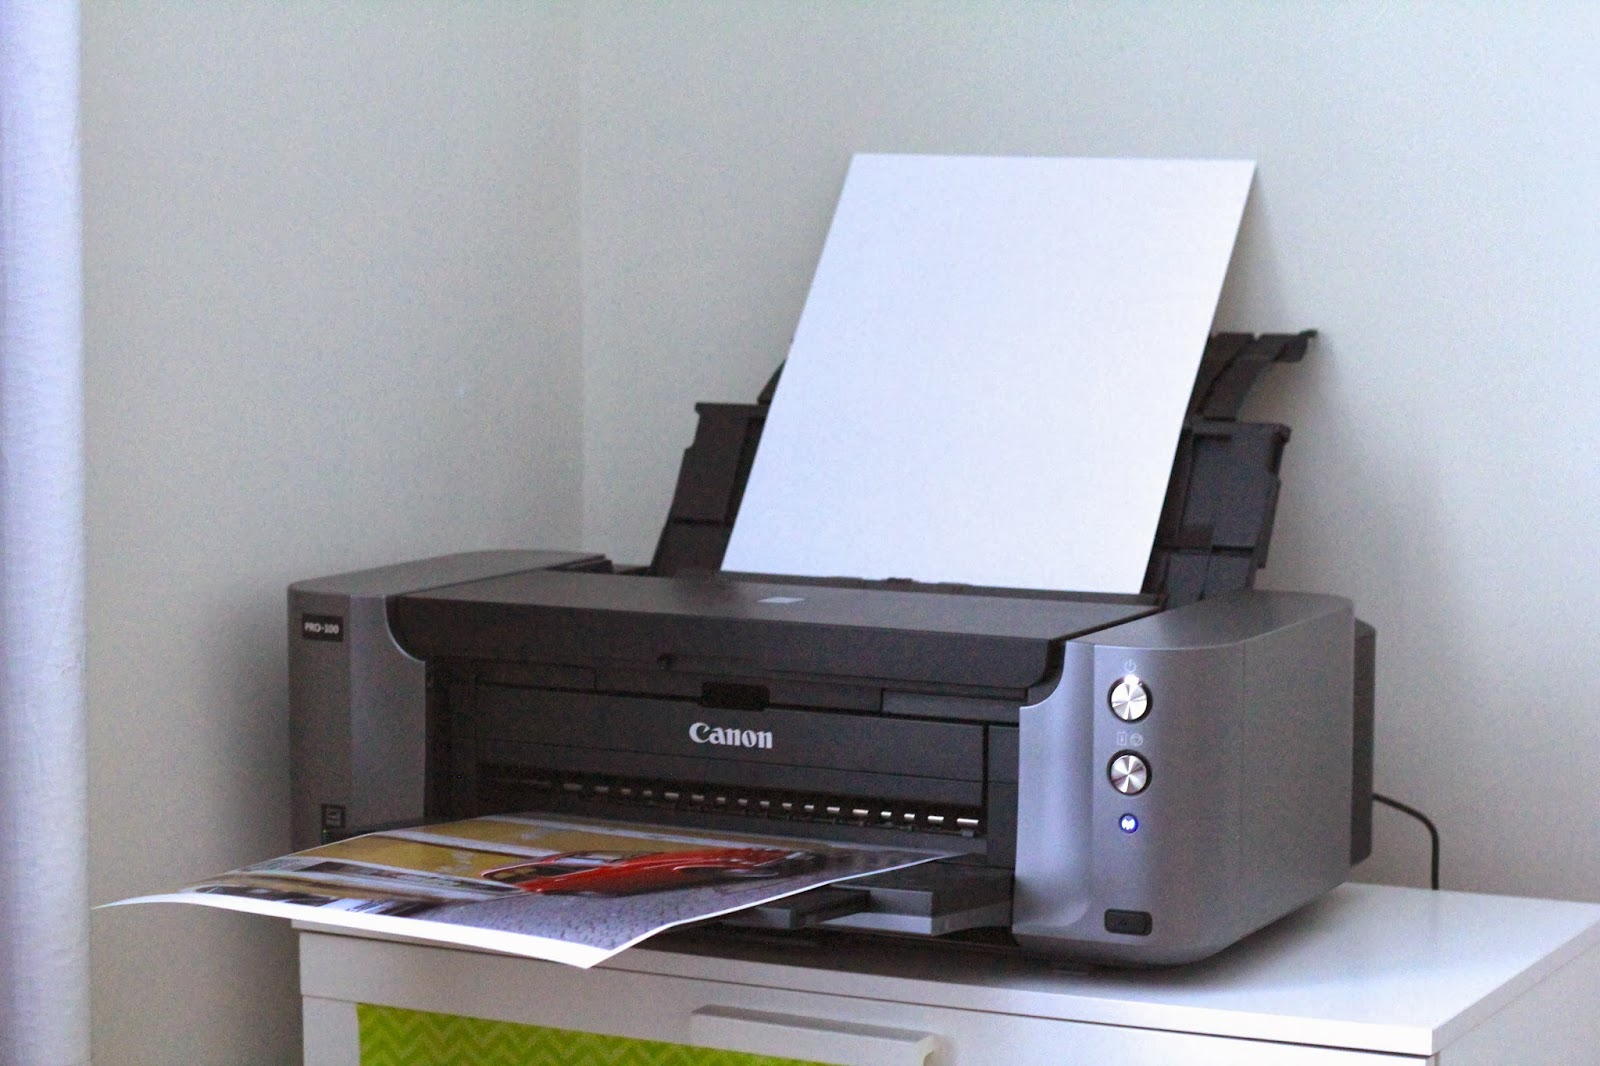 Wireless Printer For Dorm Room